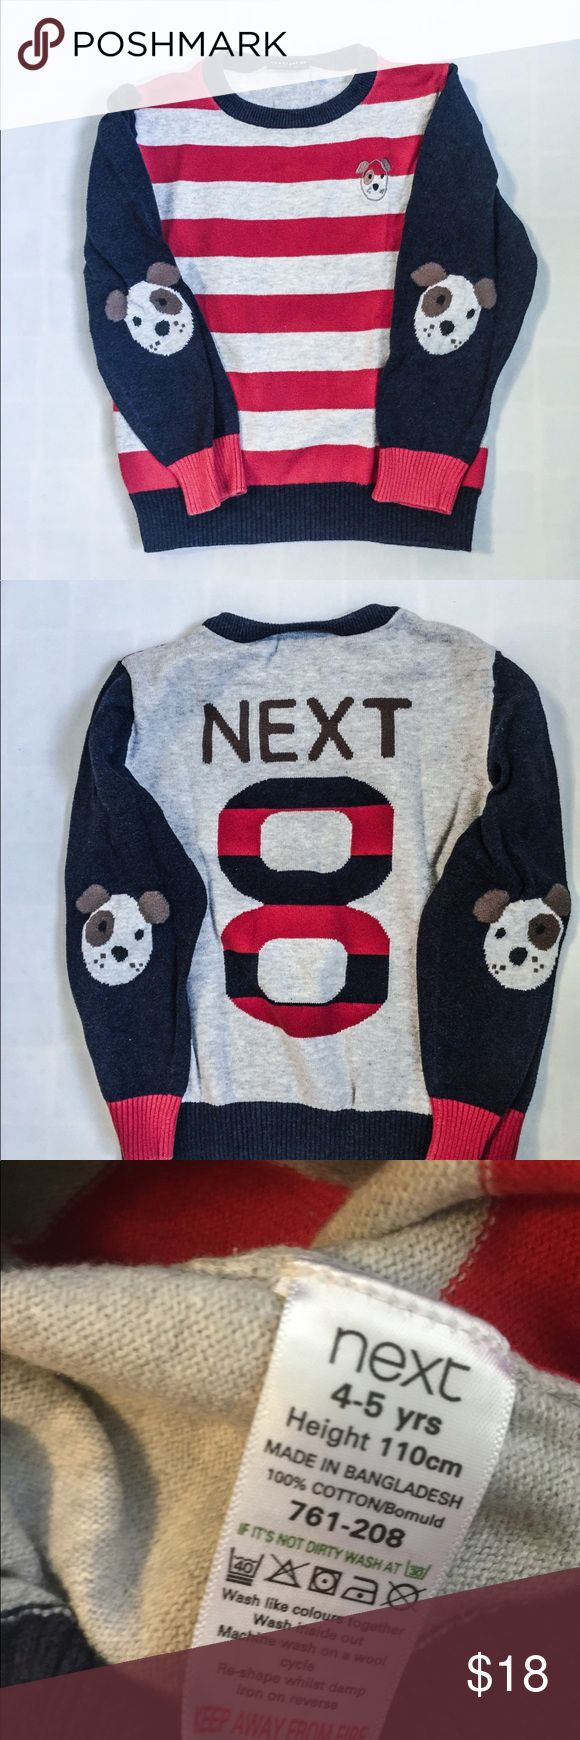 Boys Crewneck striped Sweater w. appliqué sleeves Adorable soft itch free  crew neck 100% cotton sweater with dog appliqué patch on each side. Front is tan and white striped, back has a company logo and #8. Boys size 4-5. Shirts & Tops Sweaters